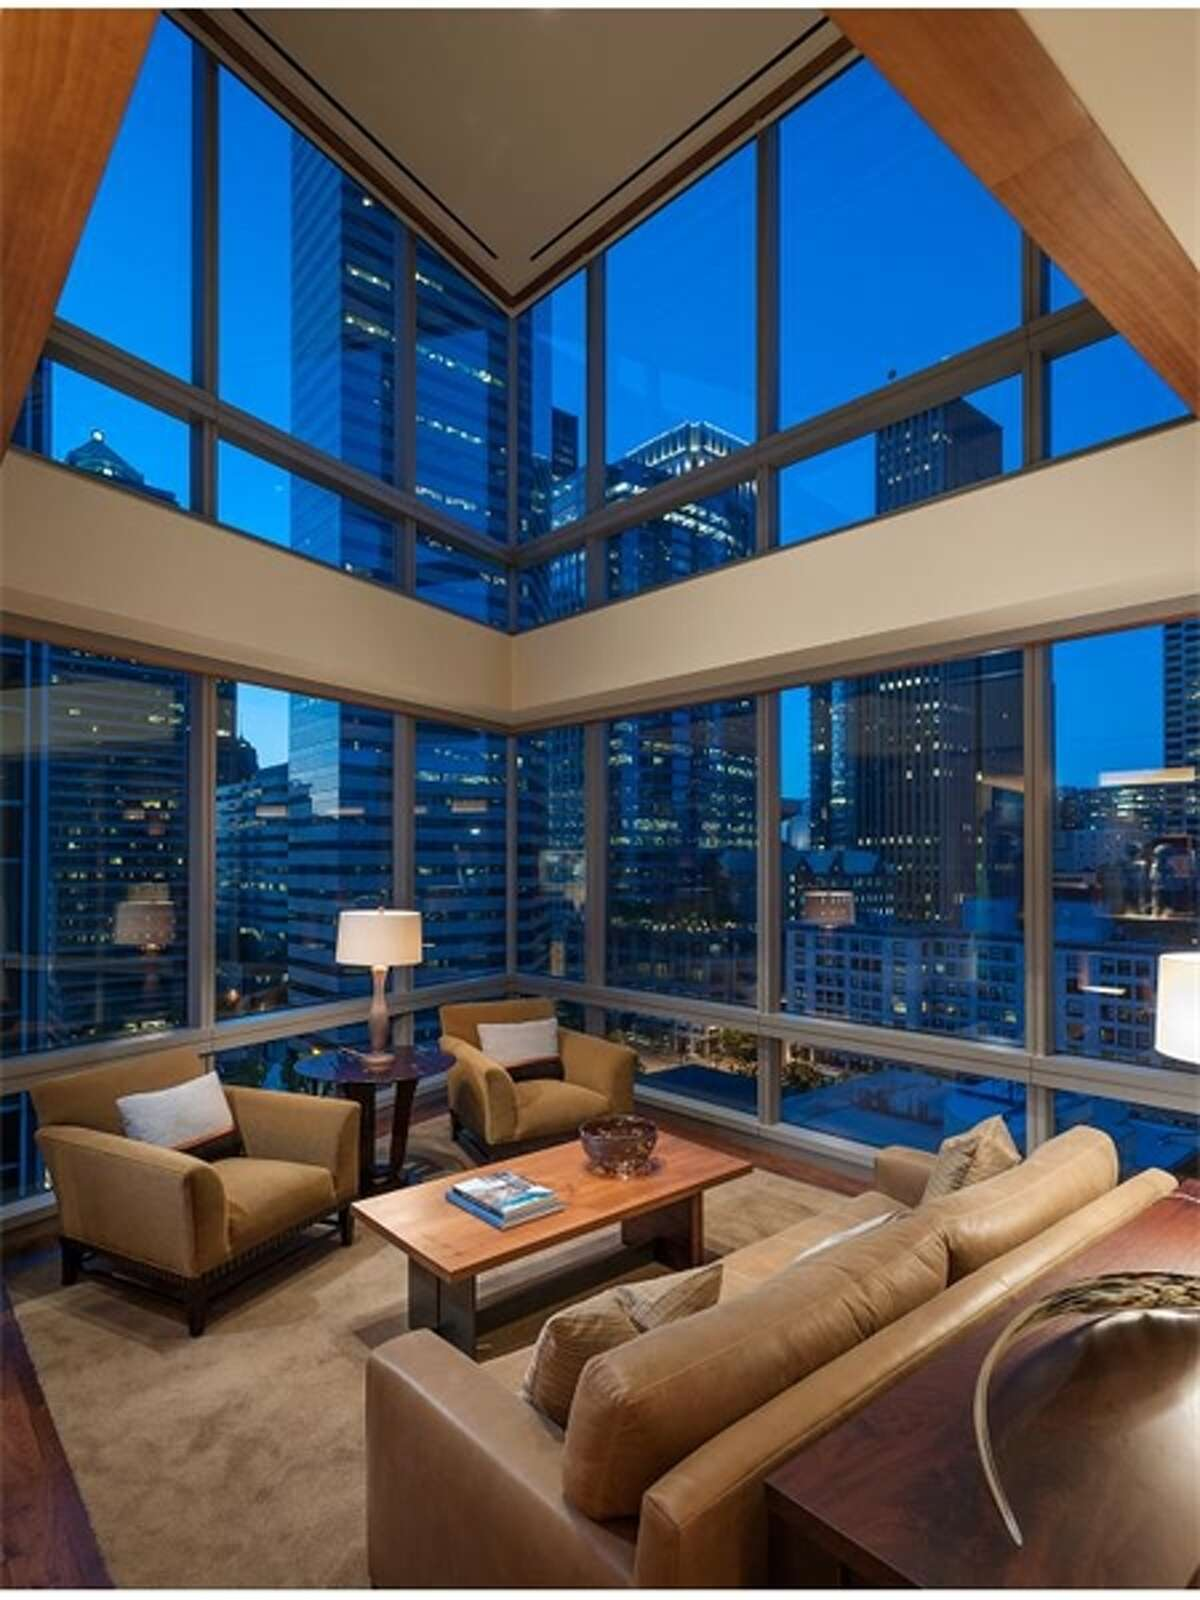 Want a two-story wall of windows overlooking downtown Seattle and Elliott Bay? Check out this condo atop Millennium Tower, 715 2nd Ave., Unit 1504.Noted Seattle architect Jim Olson designed the 3,800-square-foot home, which has master and guest suites that overlook the living room, with sliding privacy partitions, a huge master closet, 2.25 bathrooms, art niche walls of anigre wood, a walnut staircase, a soundproof theater, extra storage and two parking spaces. It's listed for $2.7 million.